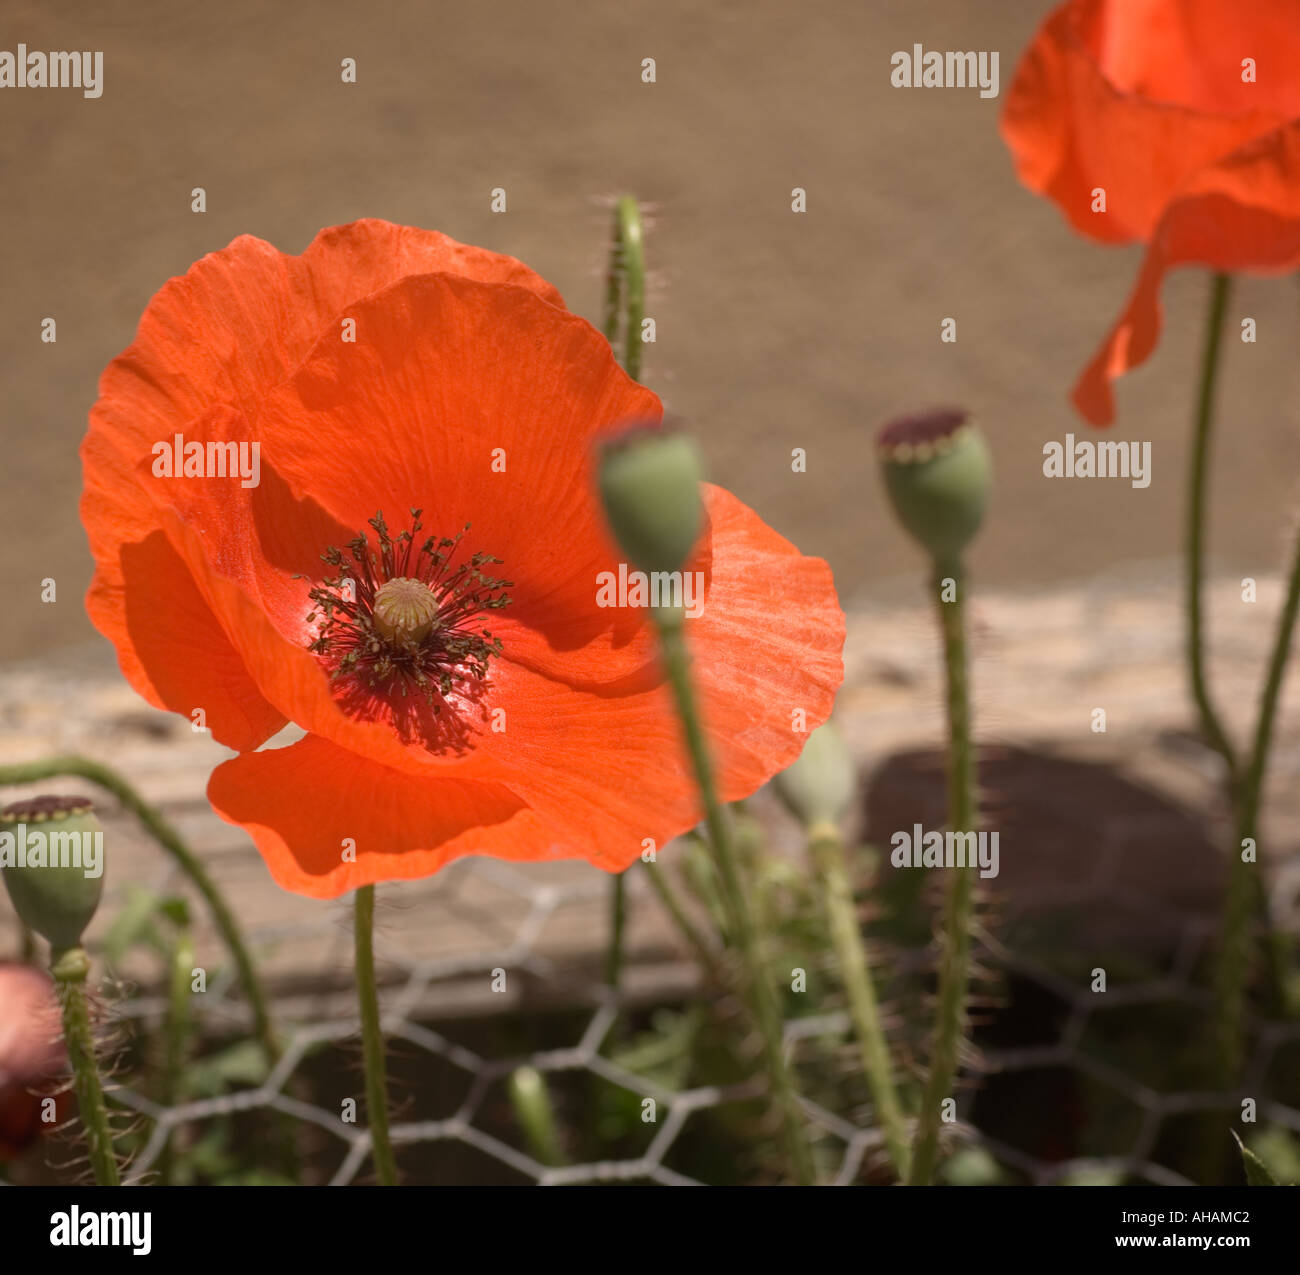 Color image of some red poppy flowers poking up through chicken wire ...